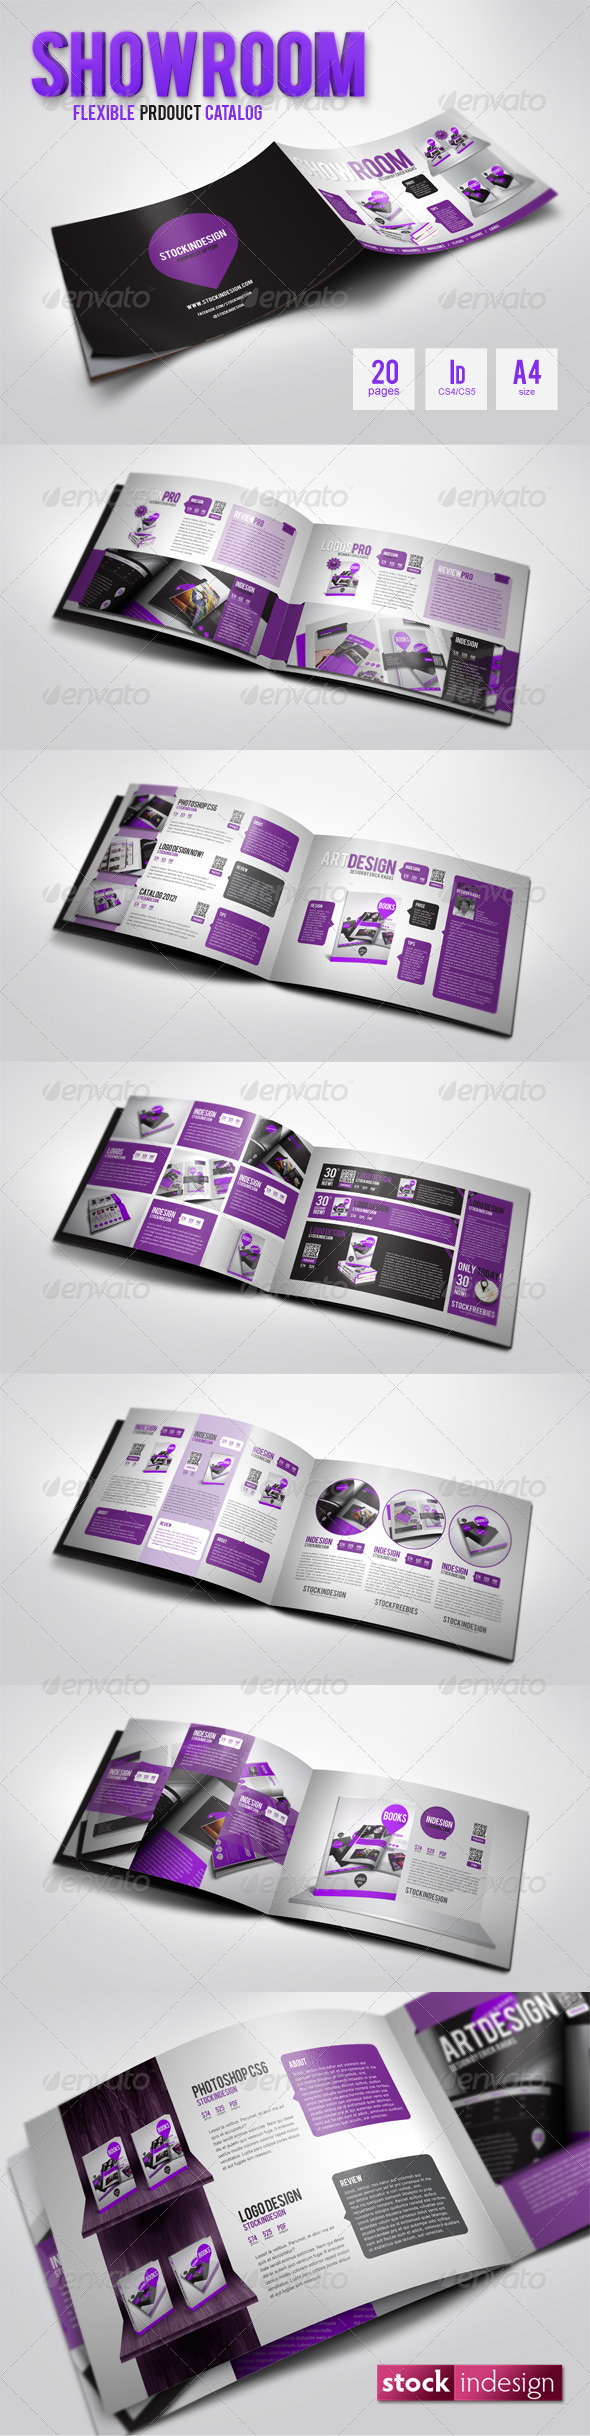 ShowRoom Flexible Product Catalog - Corporate Brochures